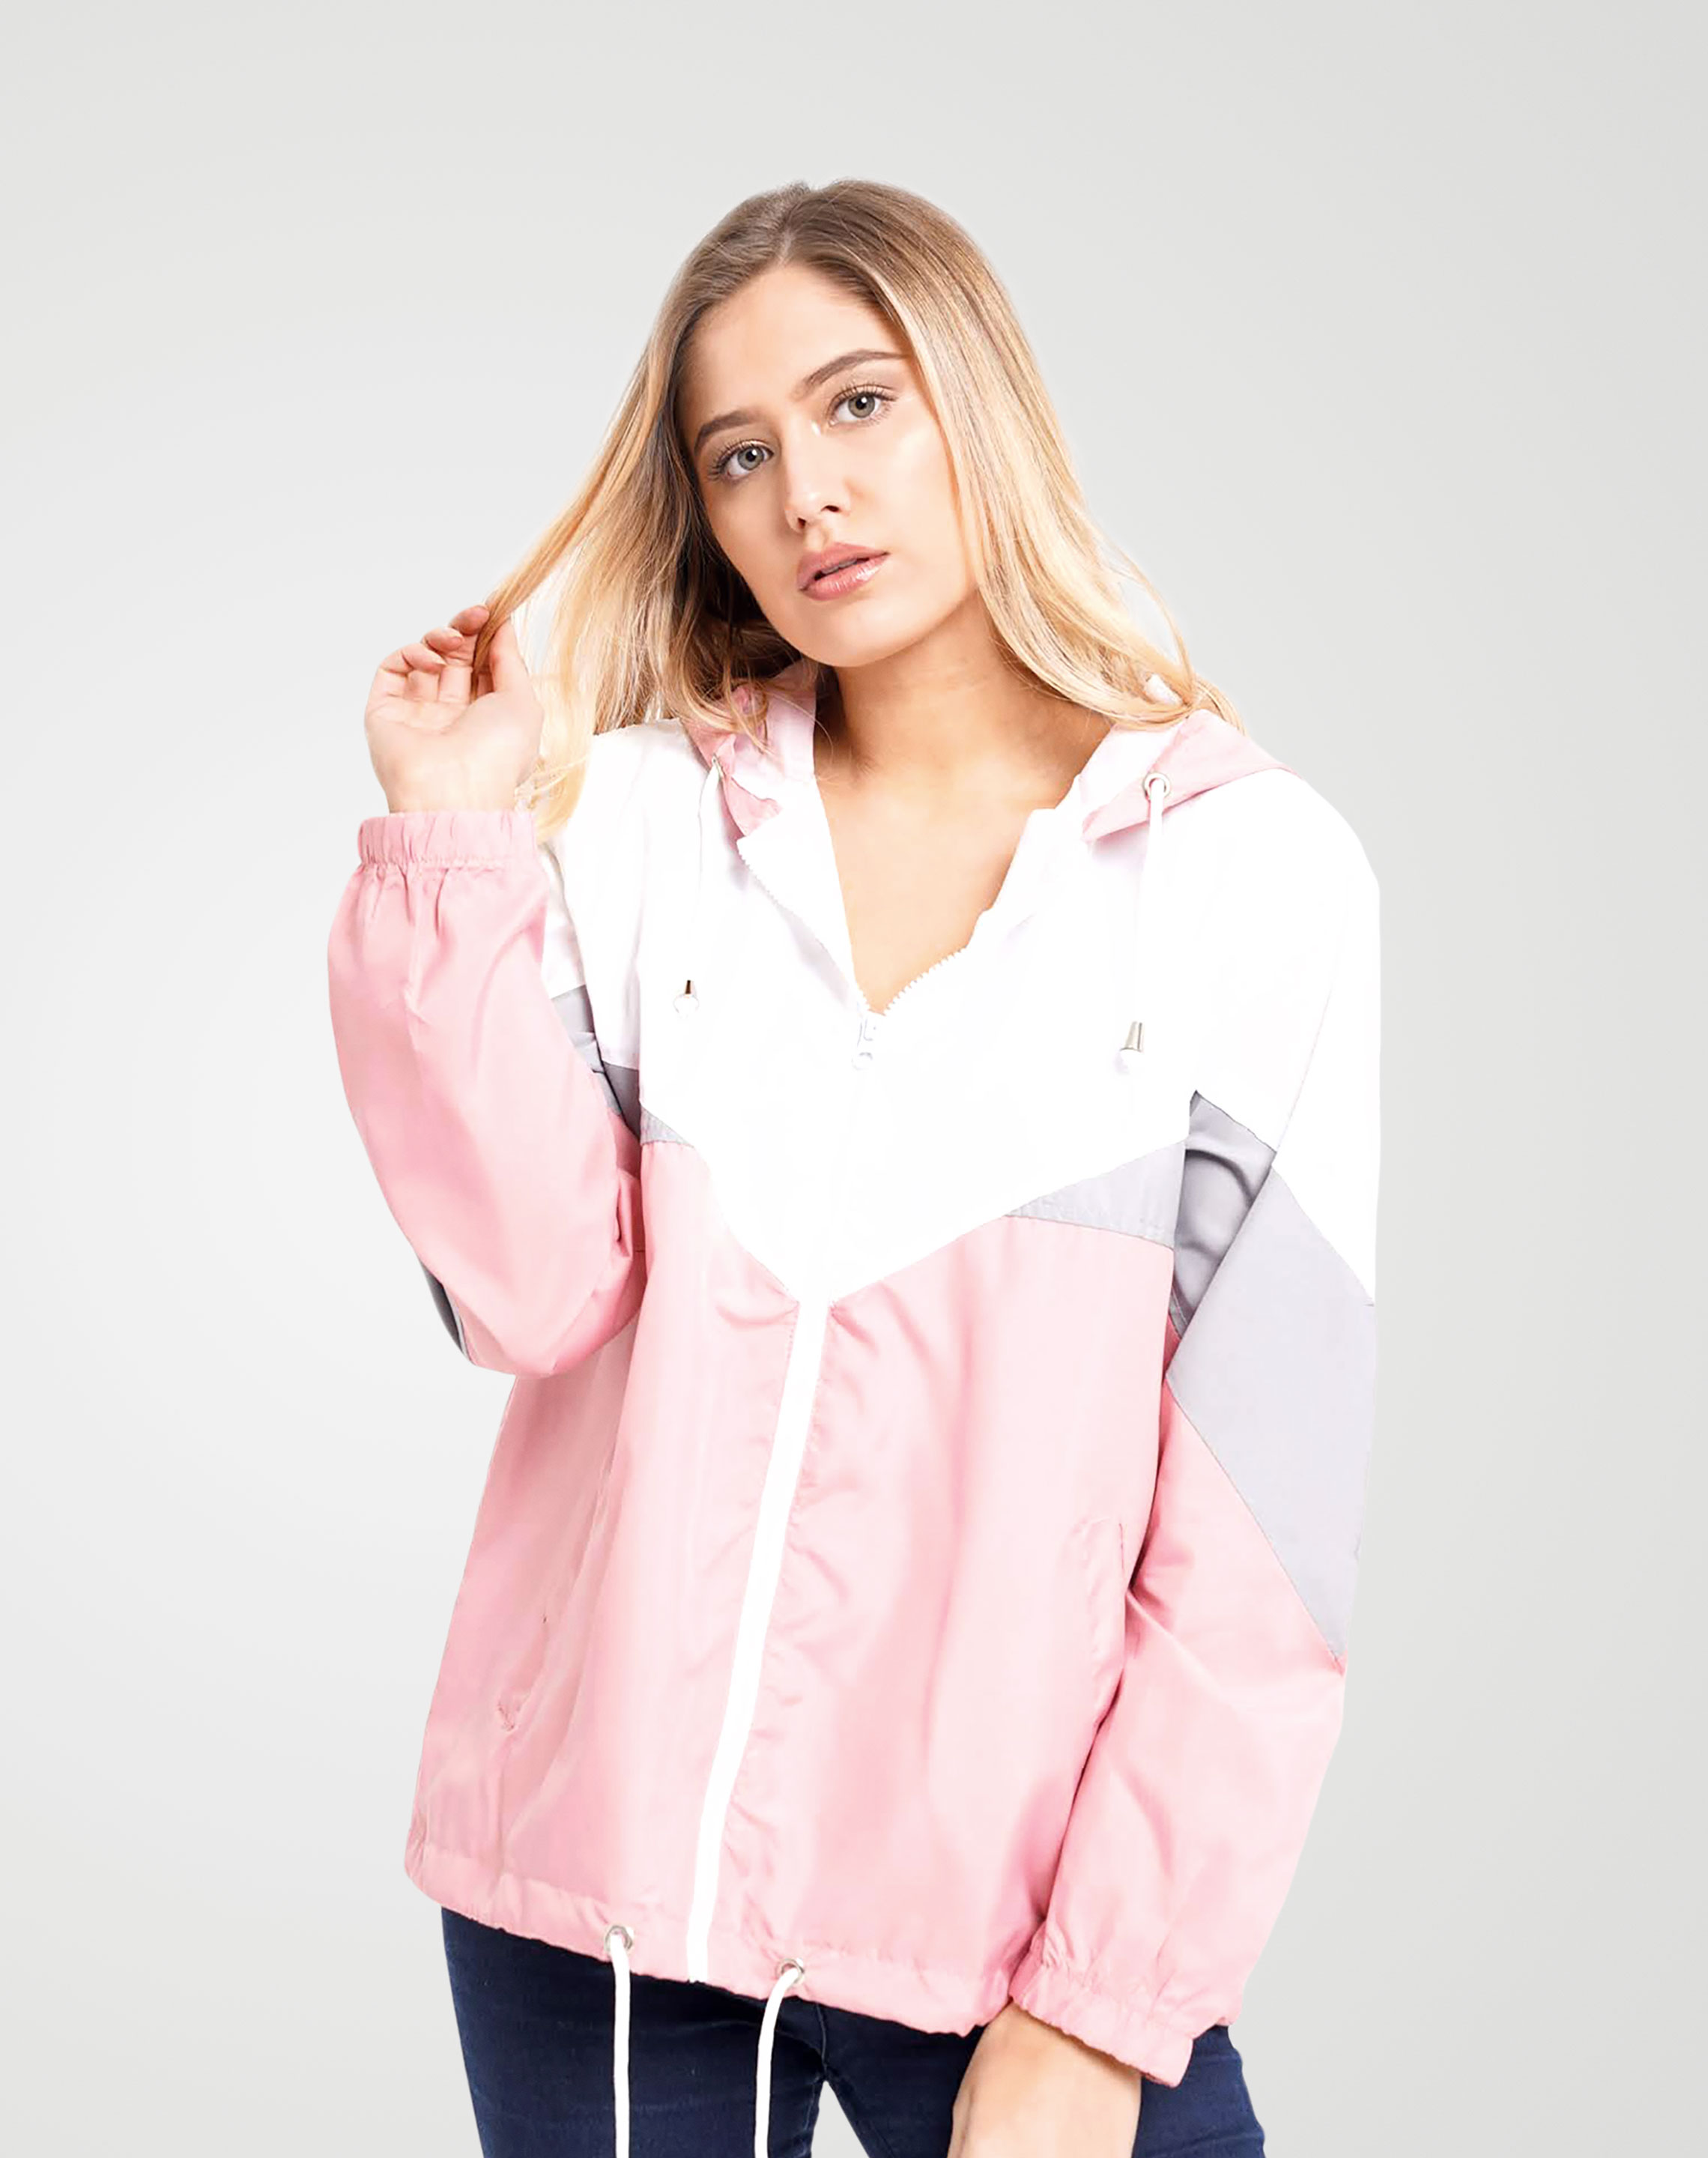 Image 3 of Womens Contrast Block Windbreaker Jacket color Pink and sizes XS, S, M, L, XL from Noroze